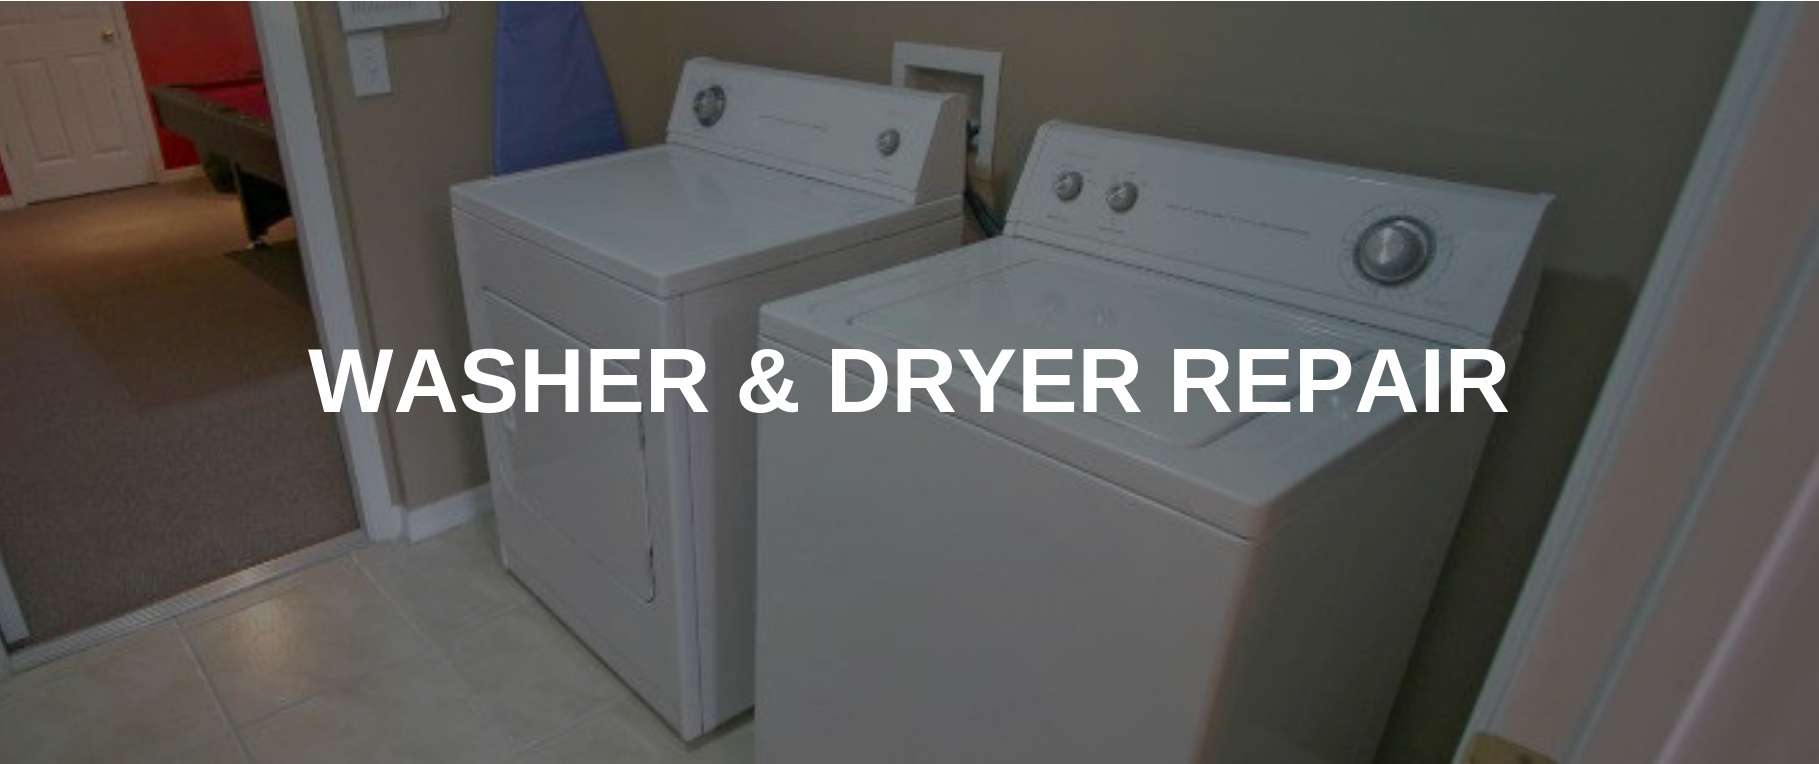 washing machine repair east hartford